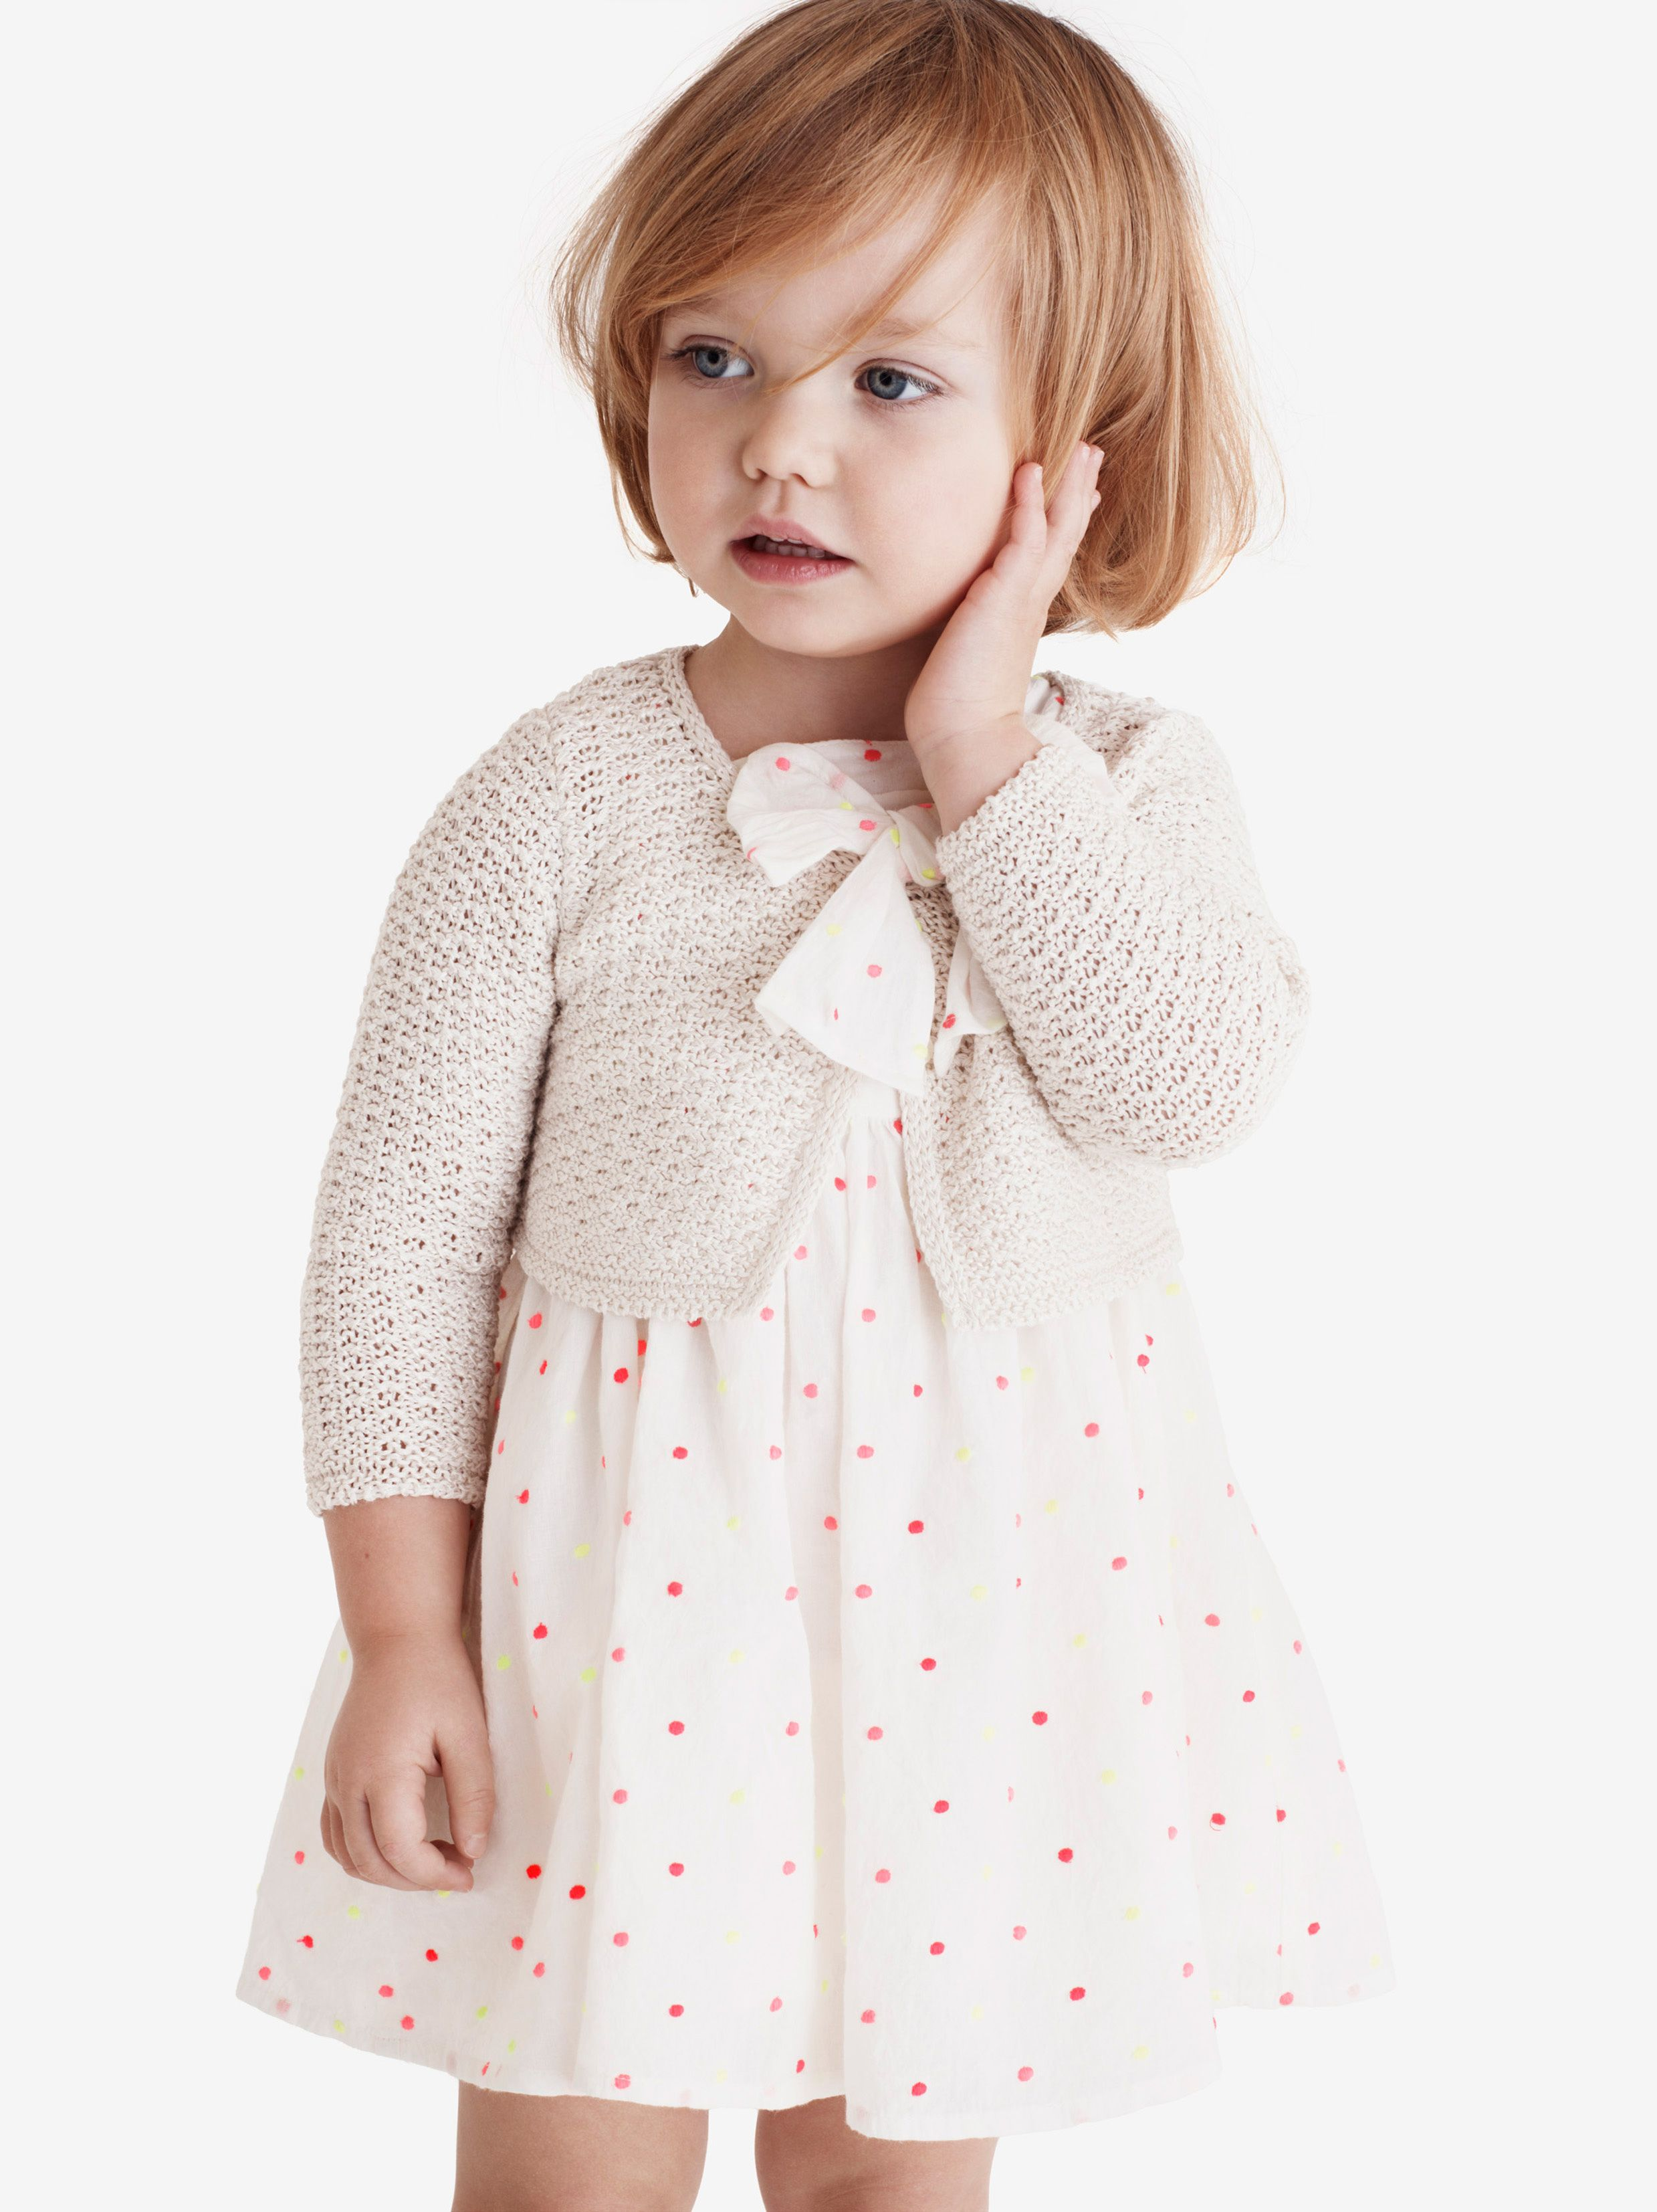 dress & cardi This makes me want to have a baby Such a cute